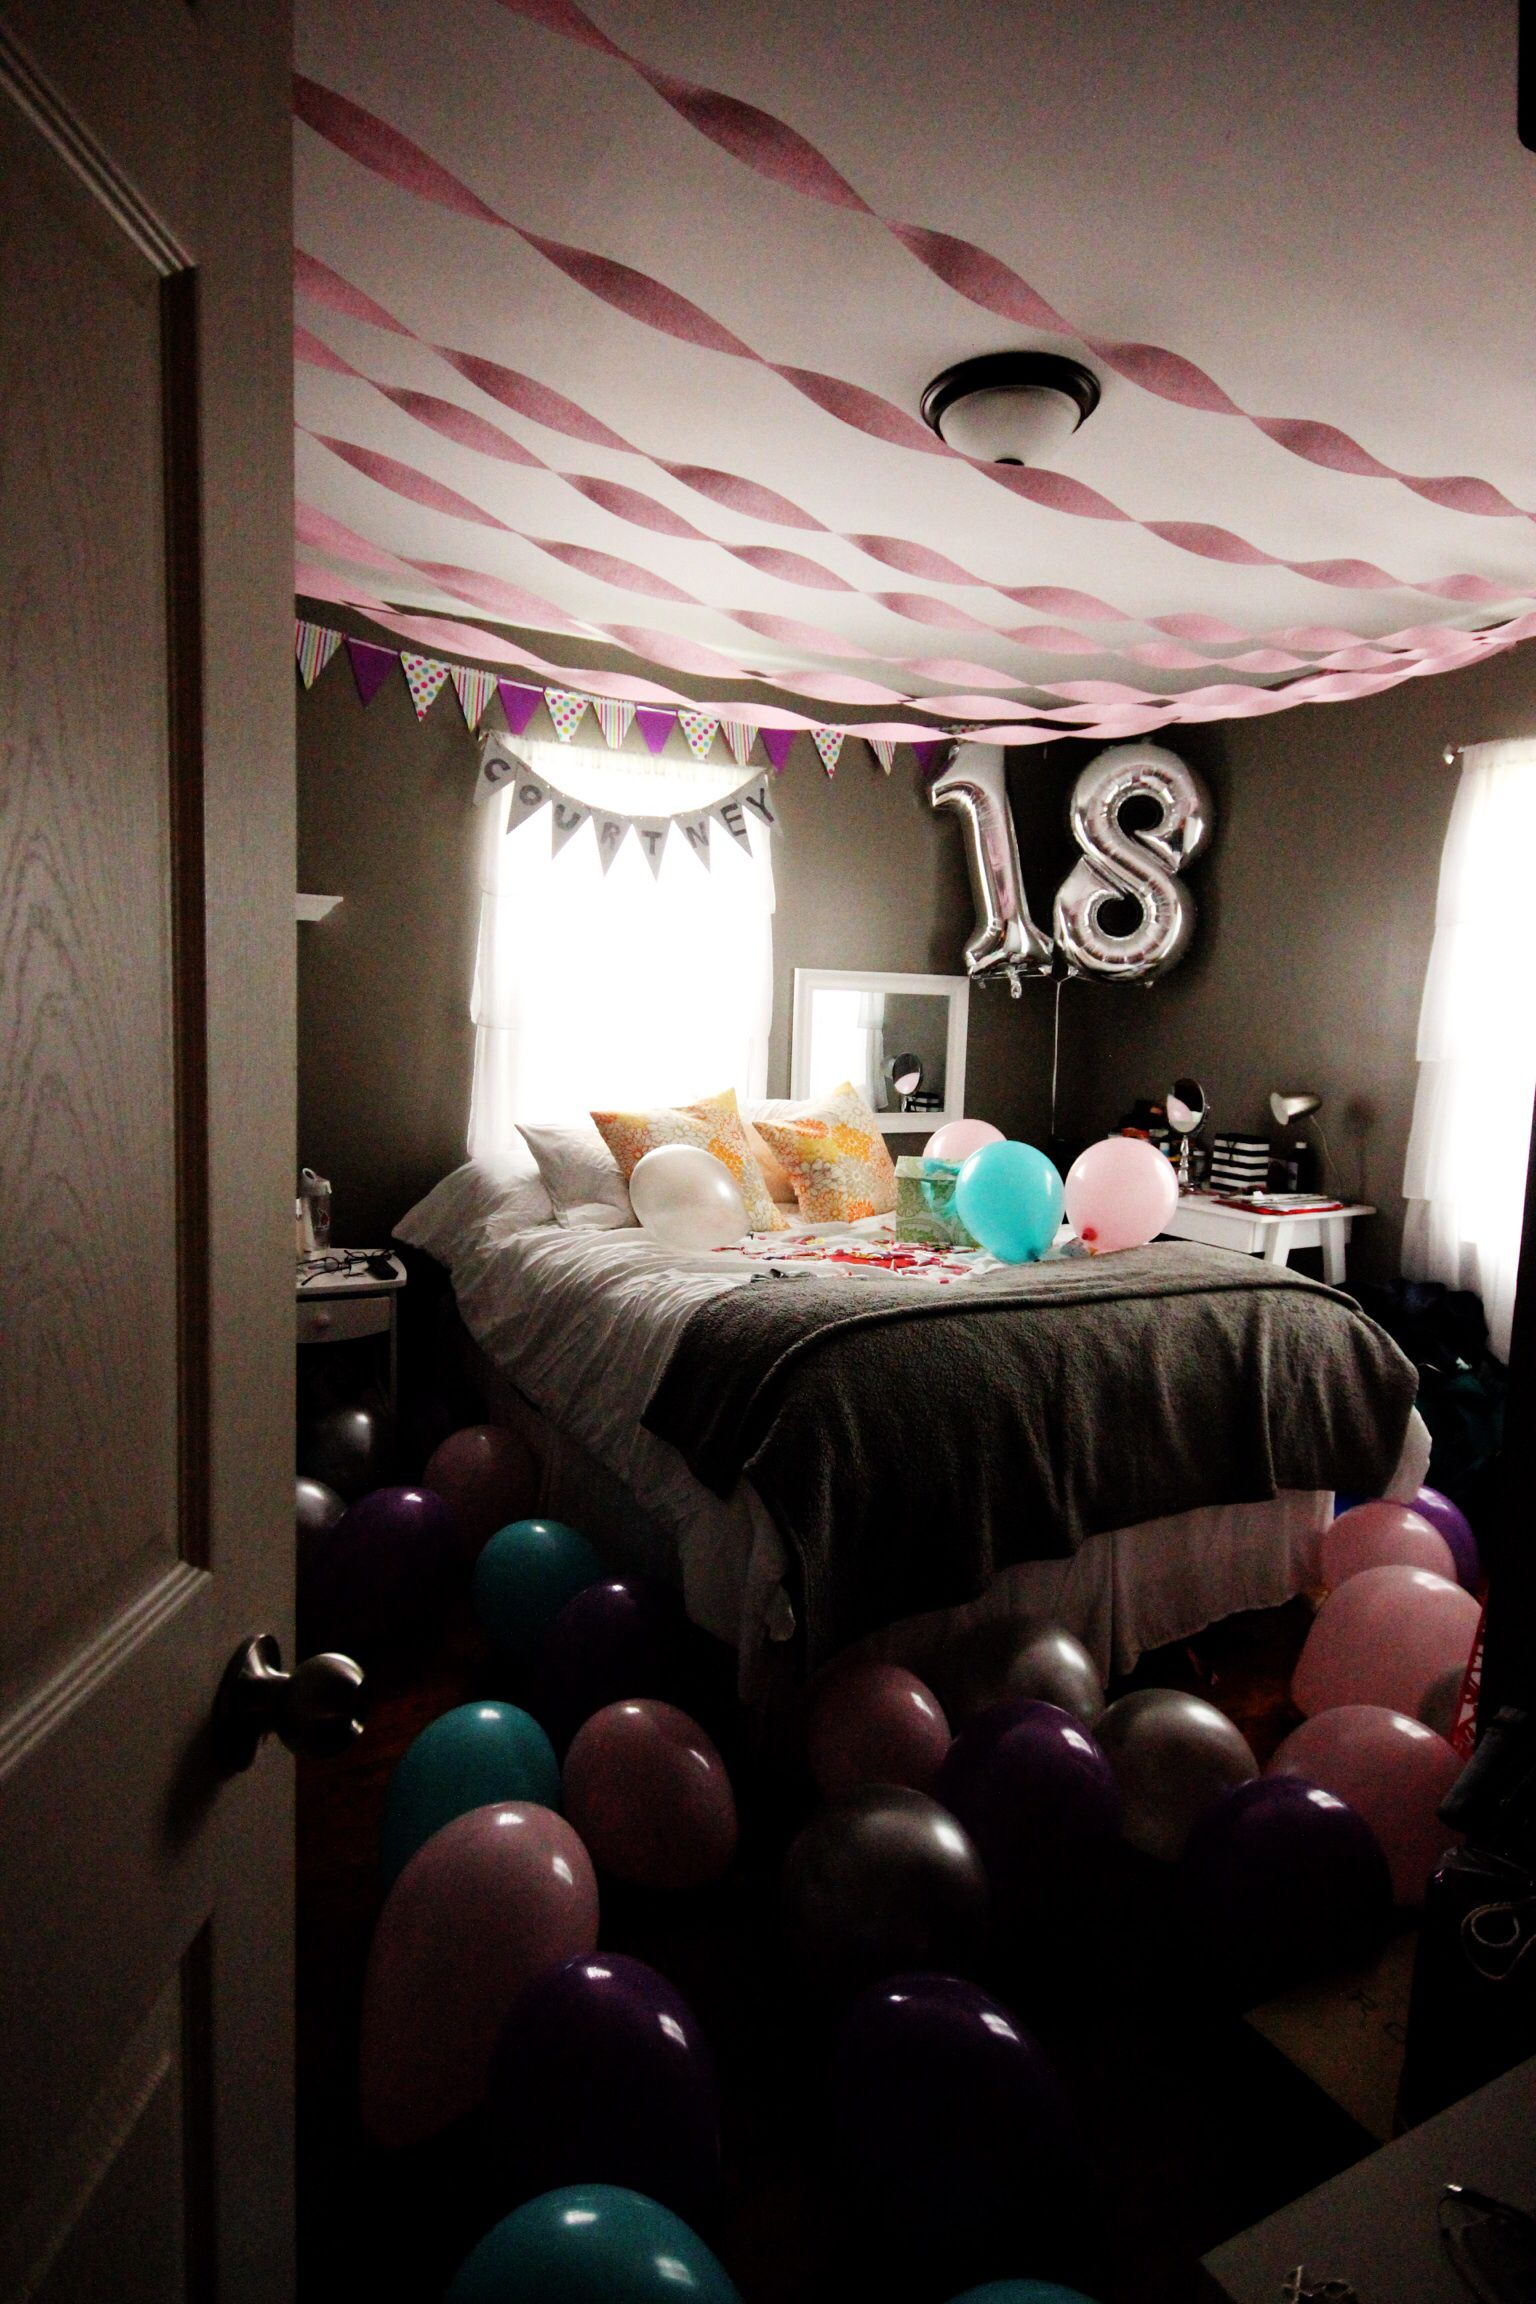 Bedroom surprise for birthday it 39 s me kiersten marie for Bedroom gifts for her